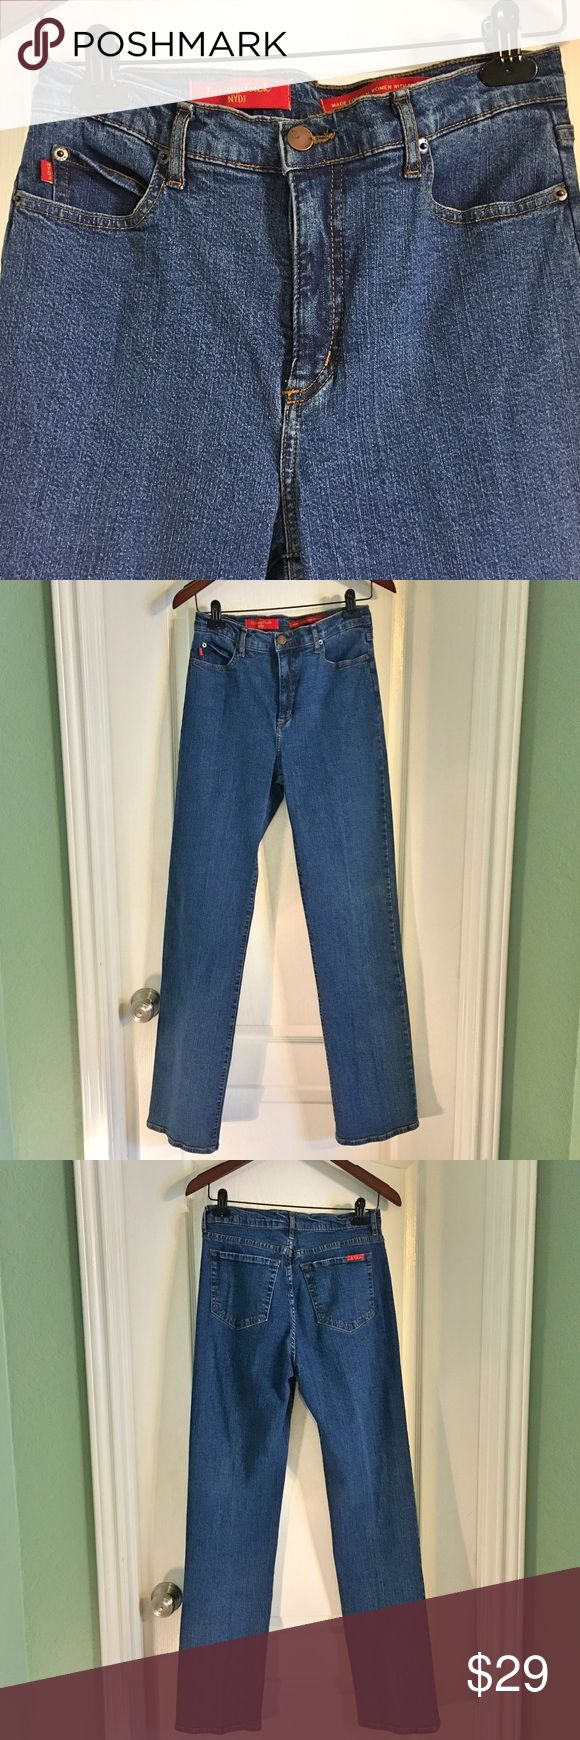 """NYDJ ~ Not Your Daughters Jeans NYDJ ~ Not Your Daughters Jeans ~ Tummy Tuck ~ Amazing slimming fit ~ Size 8 ~ Made in the USA ~ 94% Cotton & 6% Spandex ~ Waist is approximately 14"""" ~ Inseam is approximately 33"""" ~ Some wear on inside elastic area as shown in last pictures ~ Great Jeans! NYDJ Jeans"""